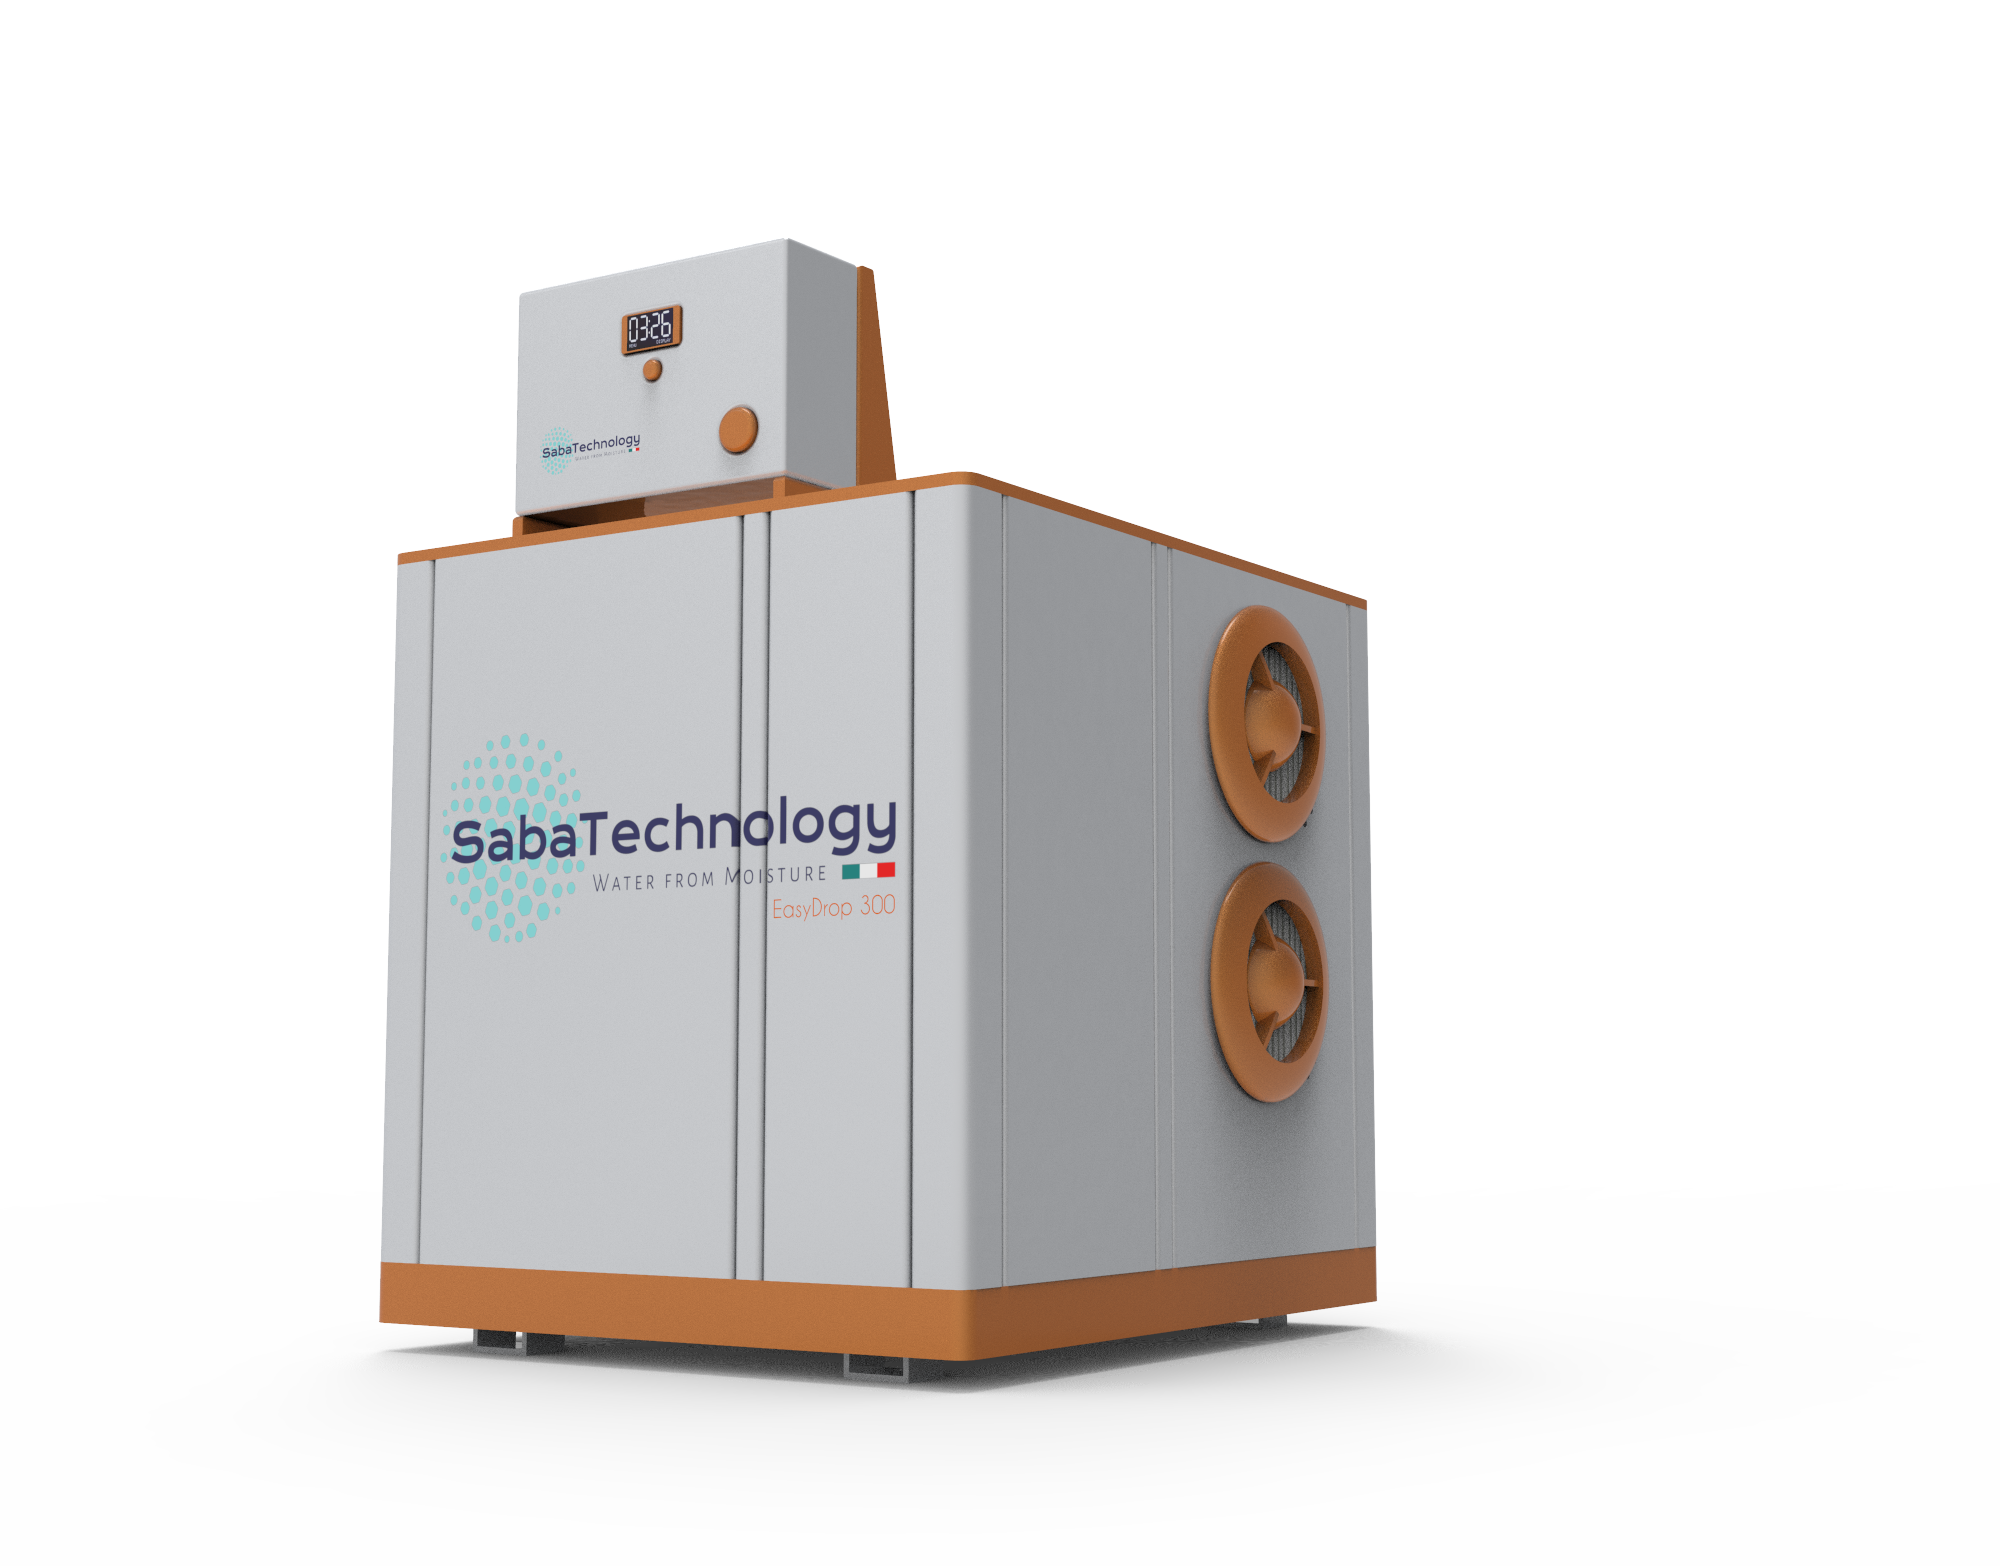 Easy Drop 300 - Saba Technology - Water From Moisture